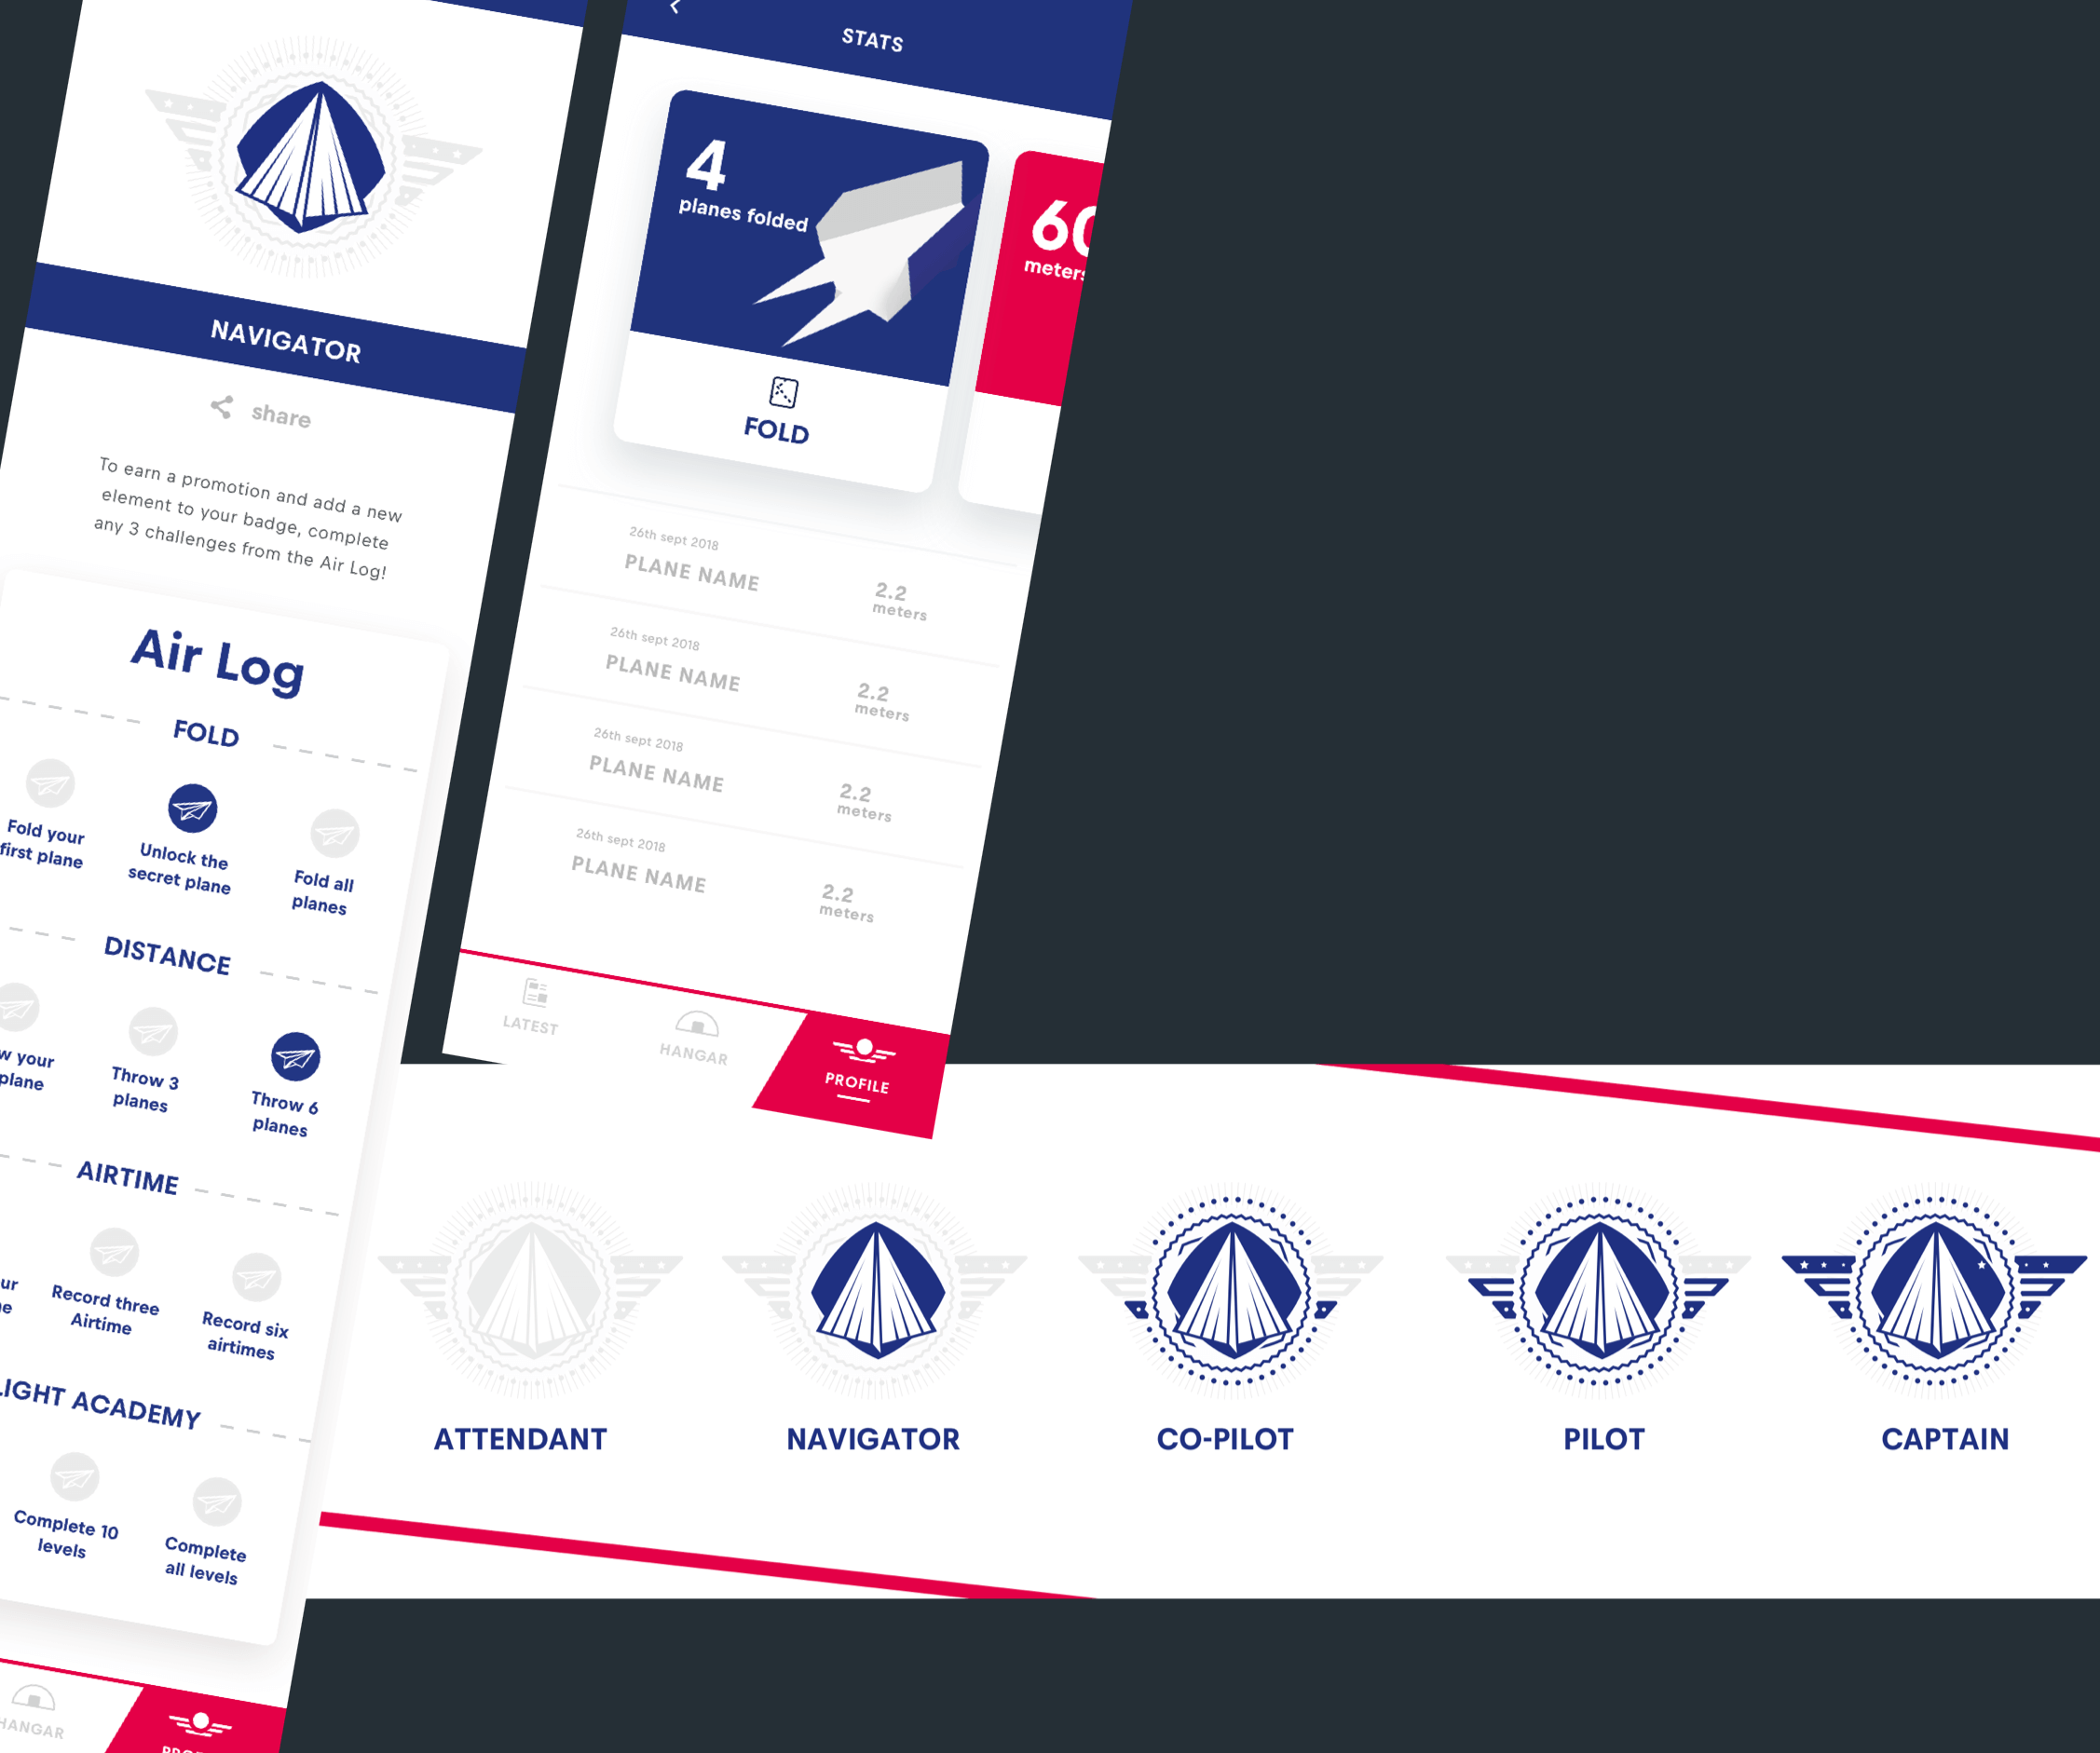 An example of the gamification of the mobile app showing the different ranks